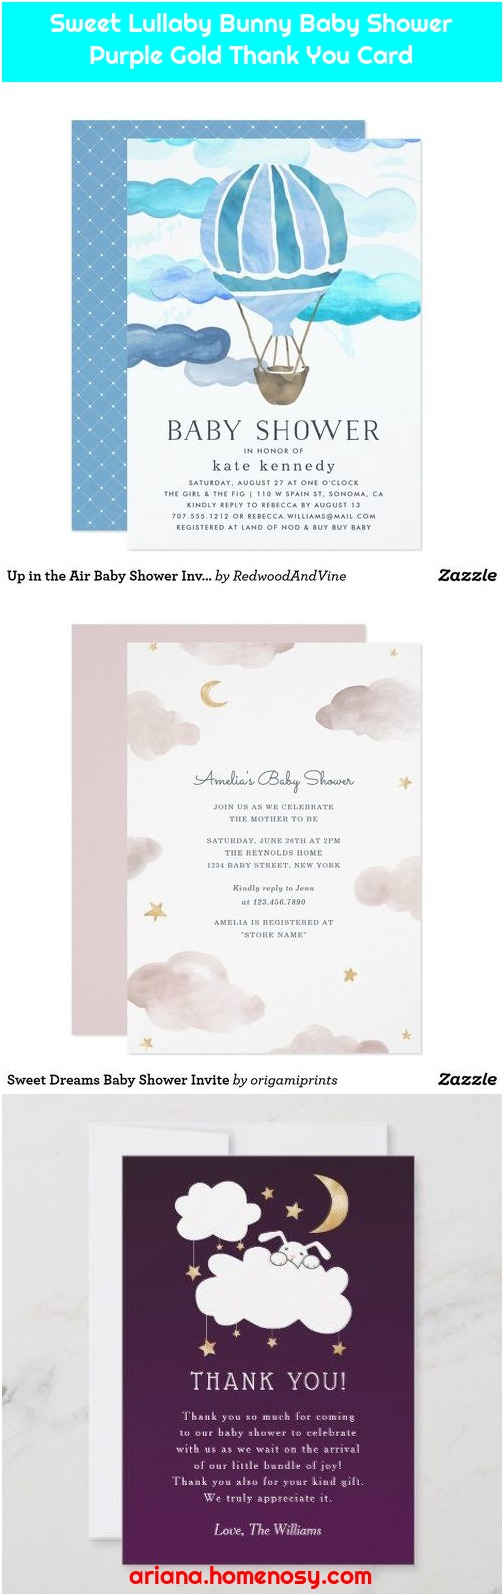 Sweet Lullaby Bunny Baby Shower Purple Gold Thank You Card